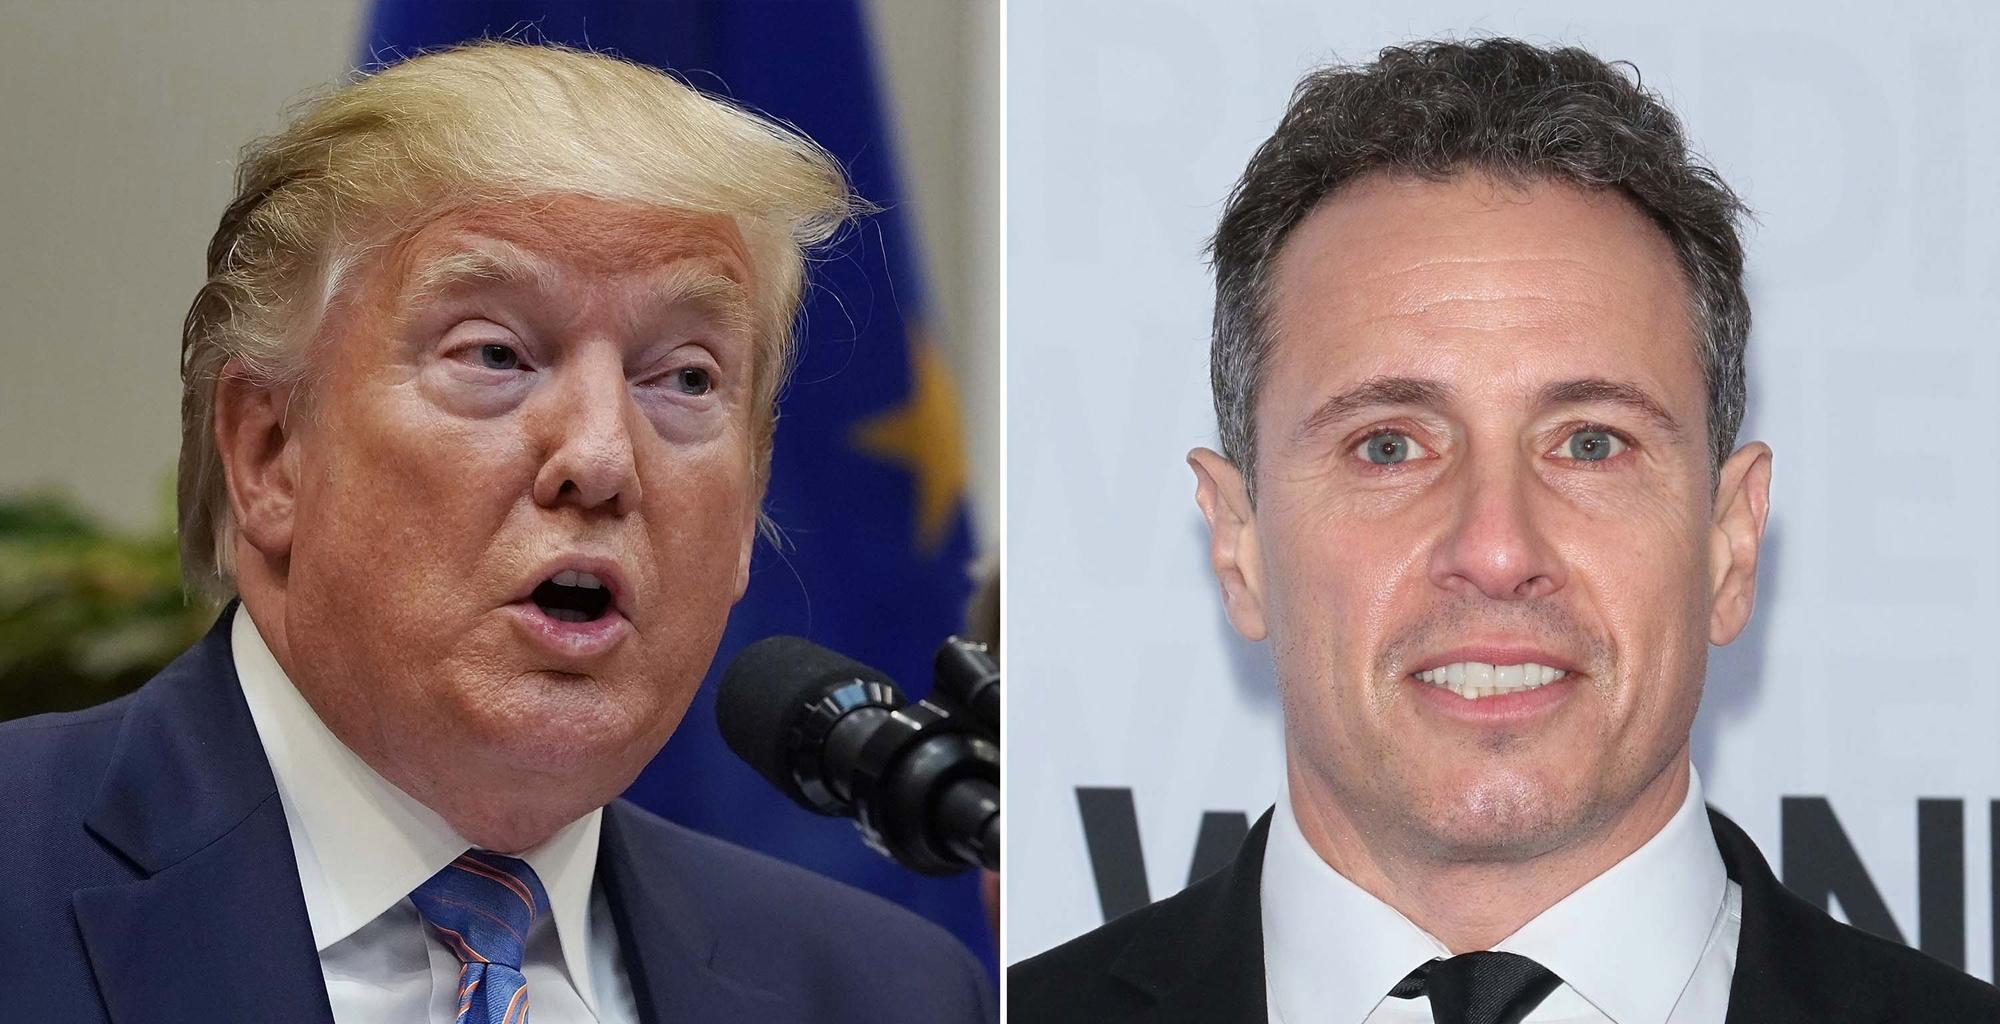 Donald Trump Has A Few Harsh Words For CNN's Chris Cuomo Swearing At A Man Who Called Him Fredo In Insane Video